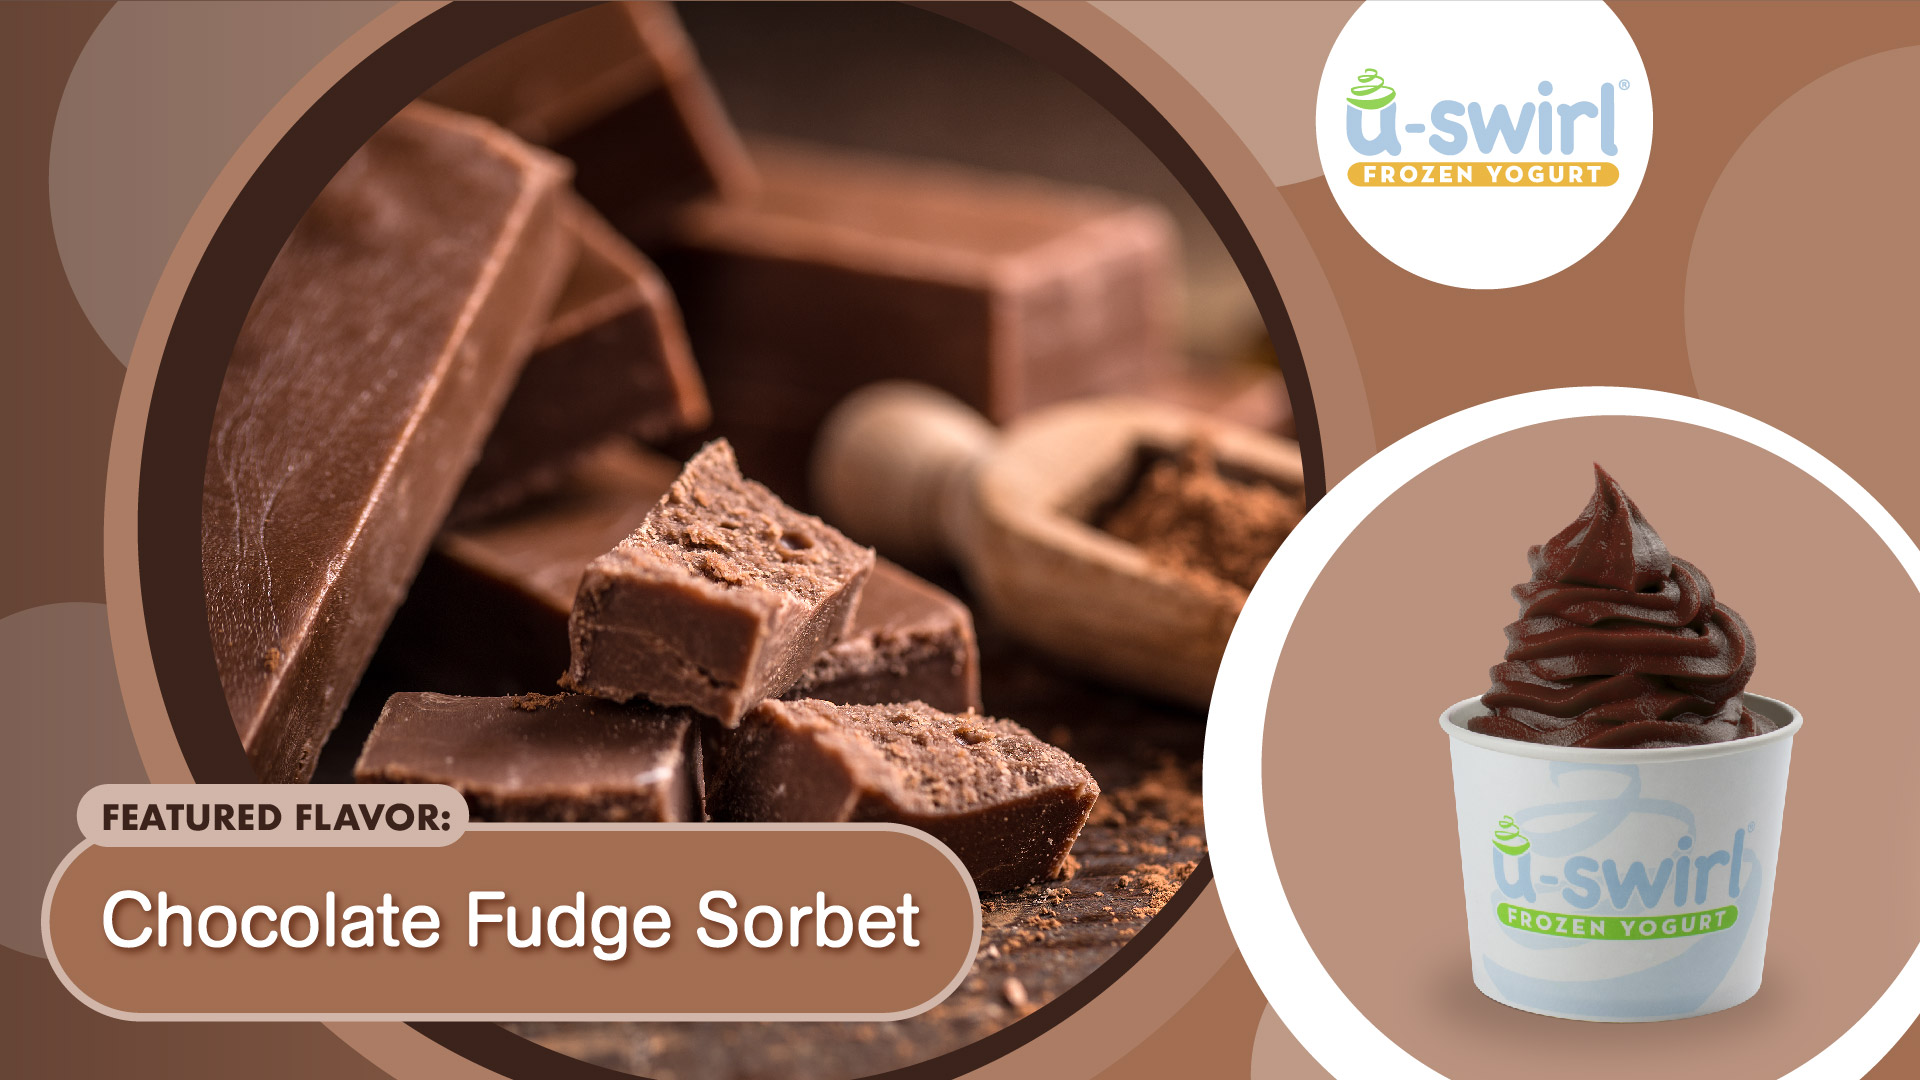 Chocolate Fudge Sorbet